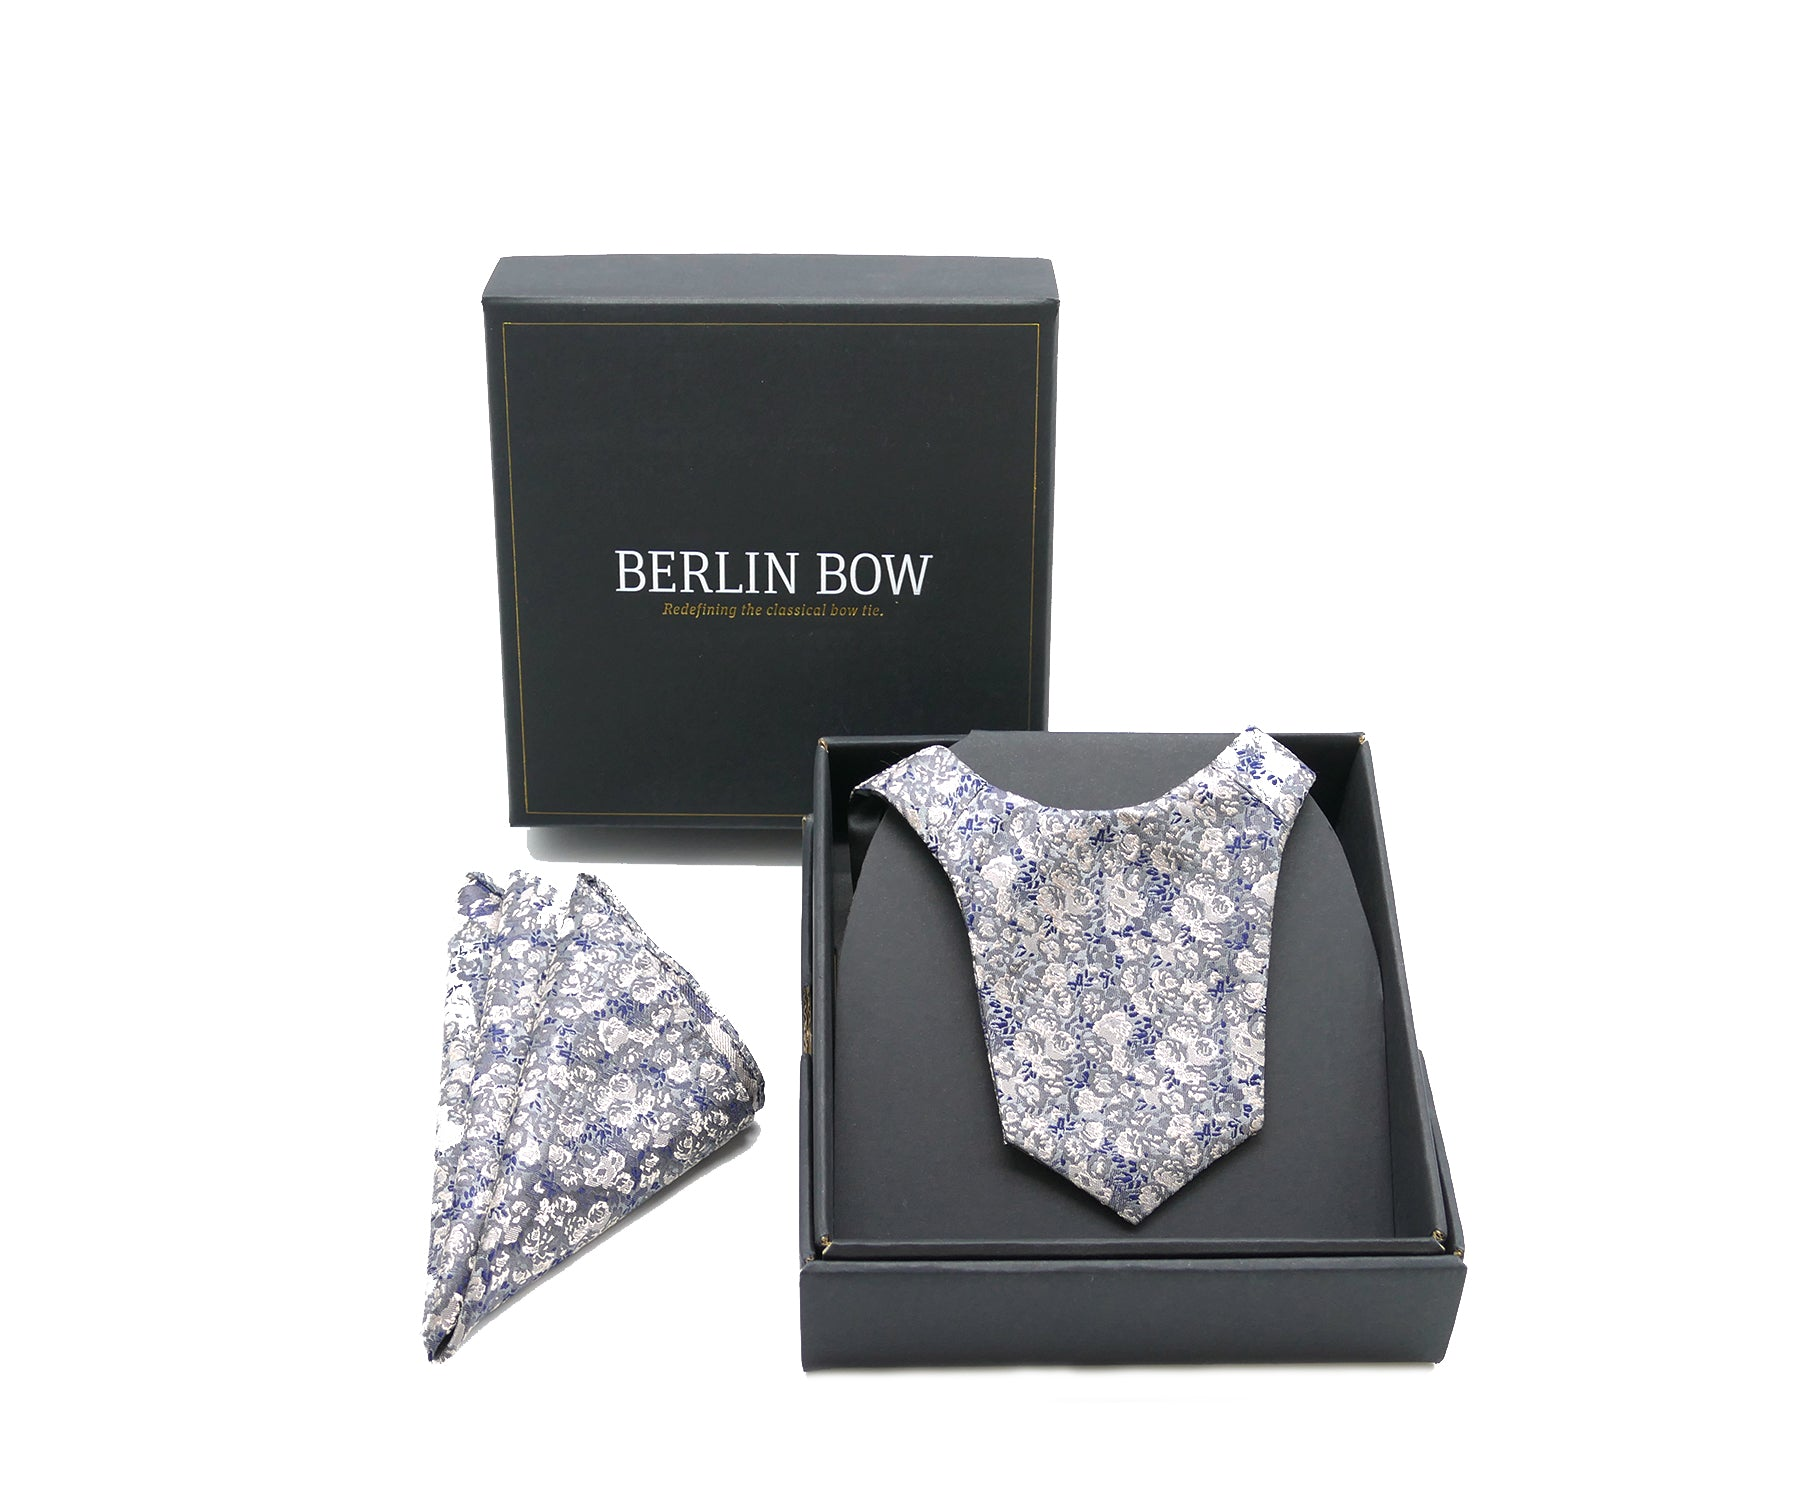 BERLIN BOW No. III design: nilo flower